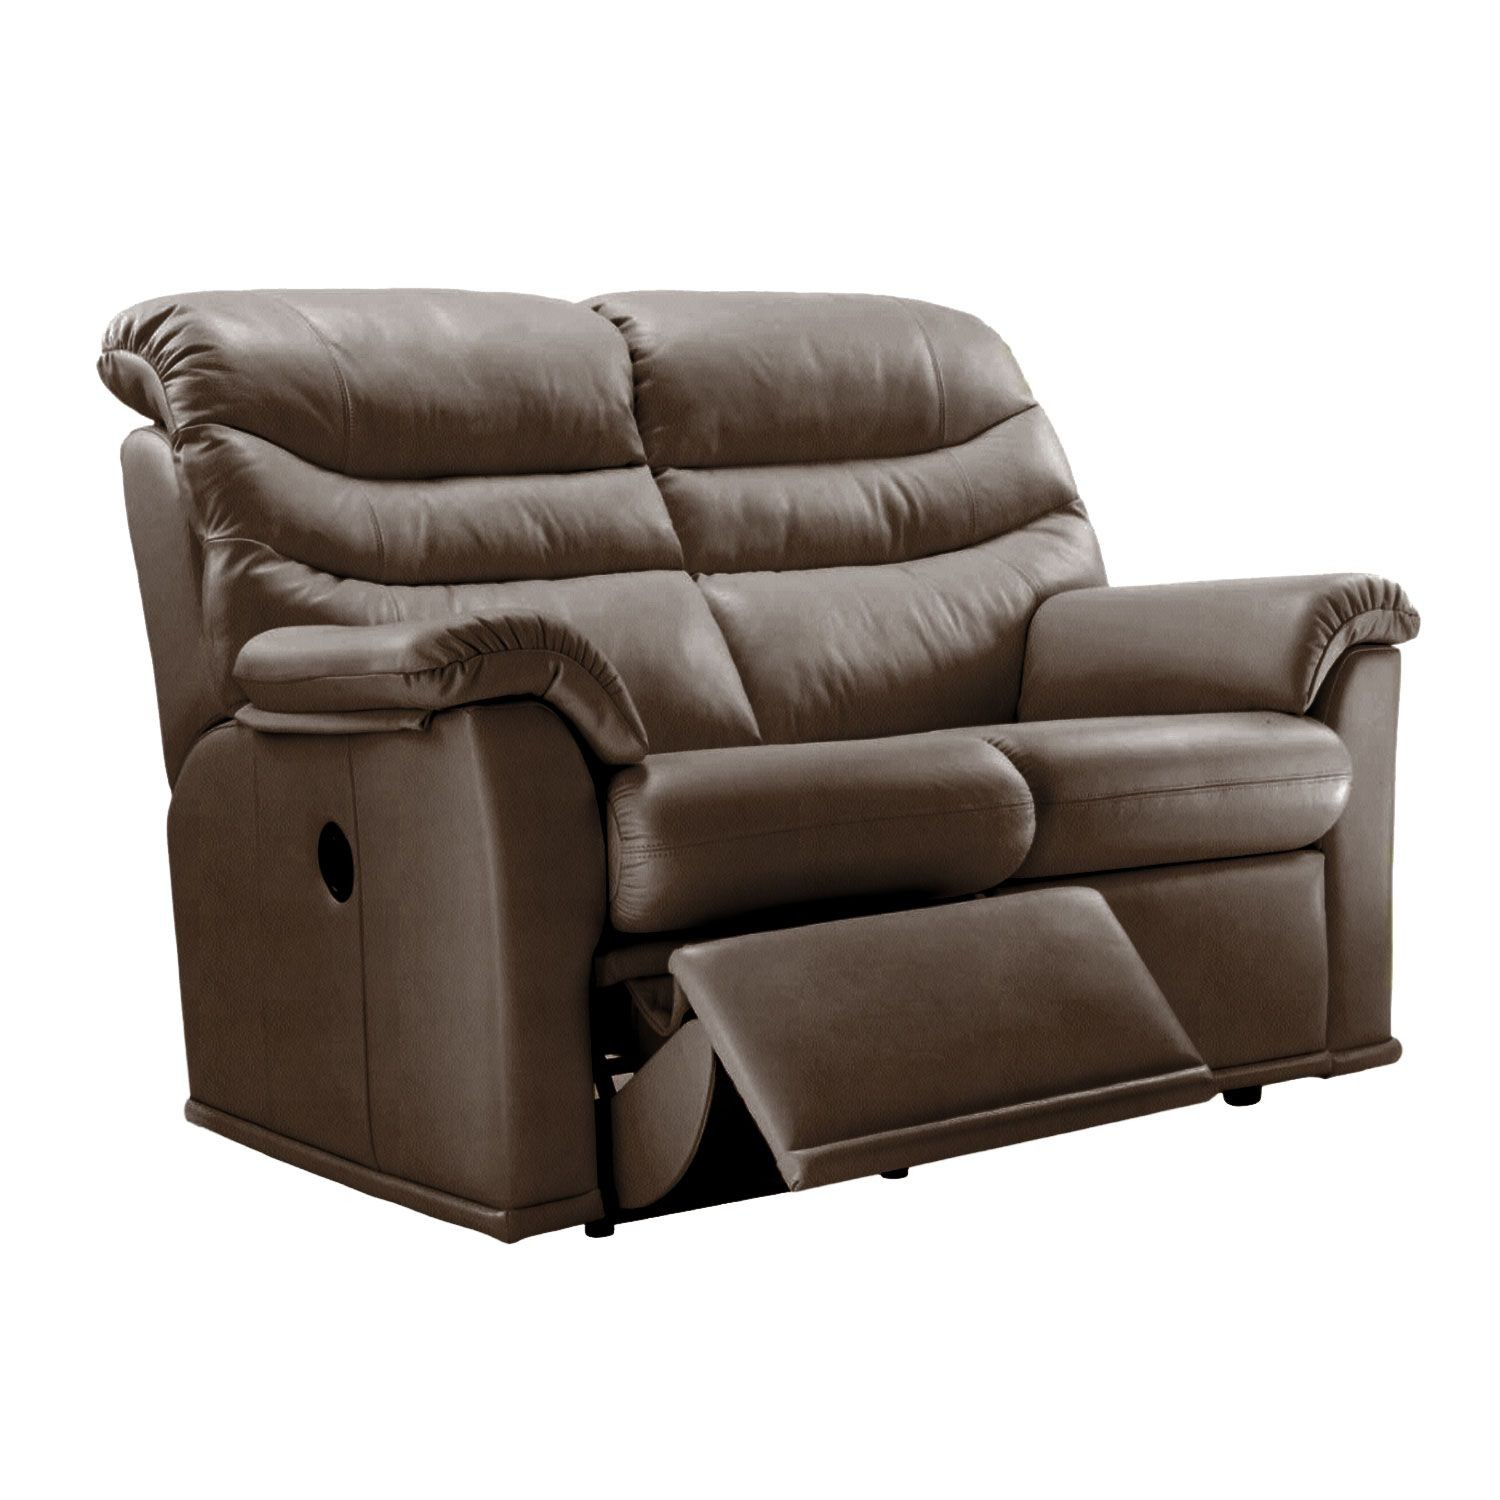 Double Recliner Chair G Plan Malvern Two Seater Double Recliner Sofa